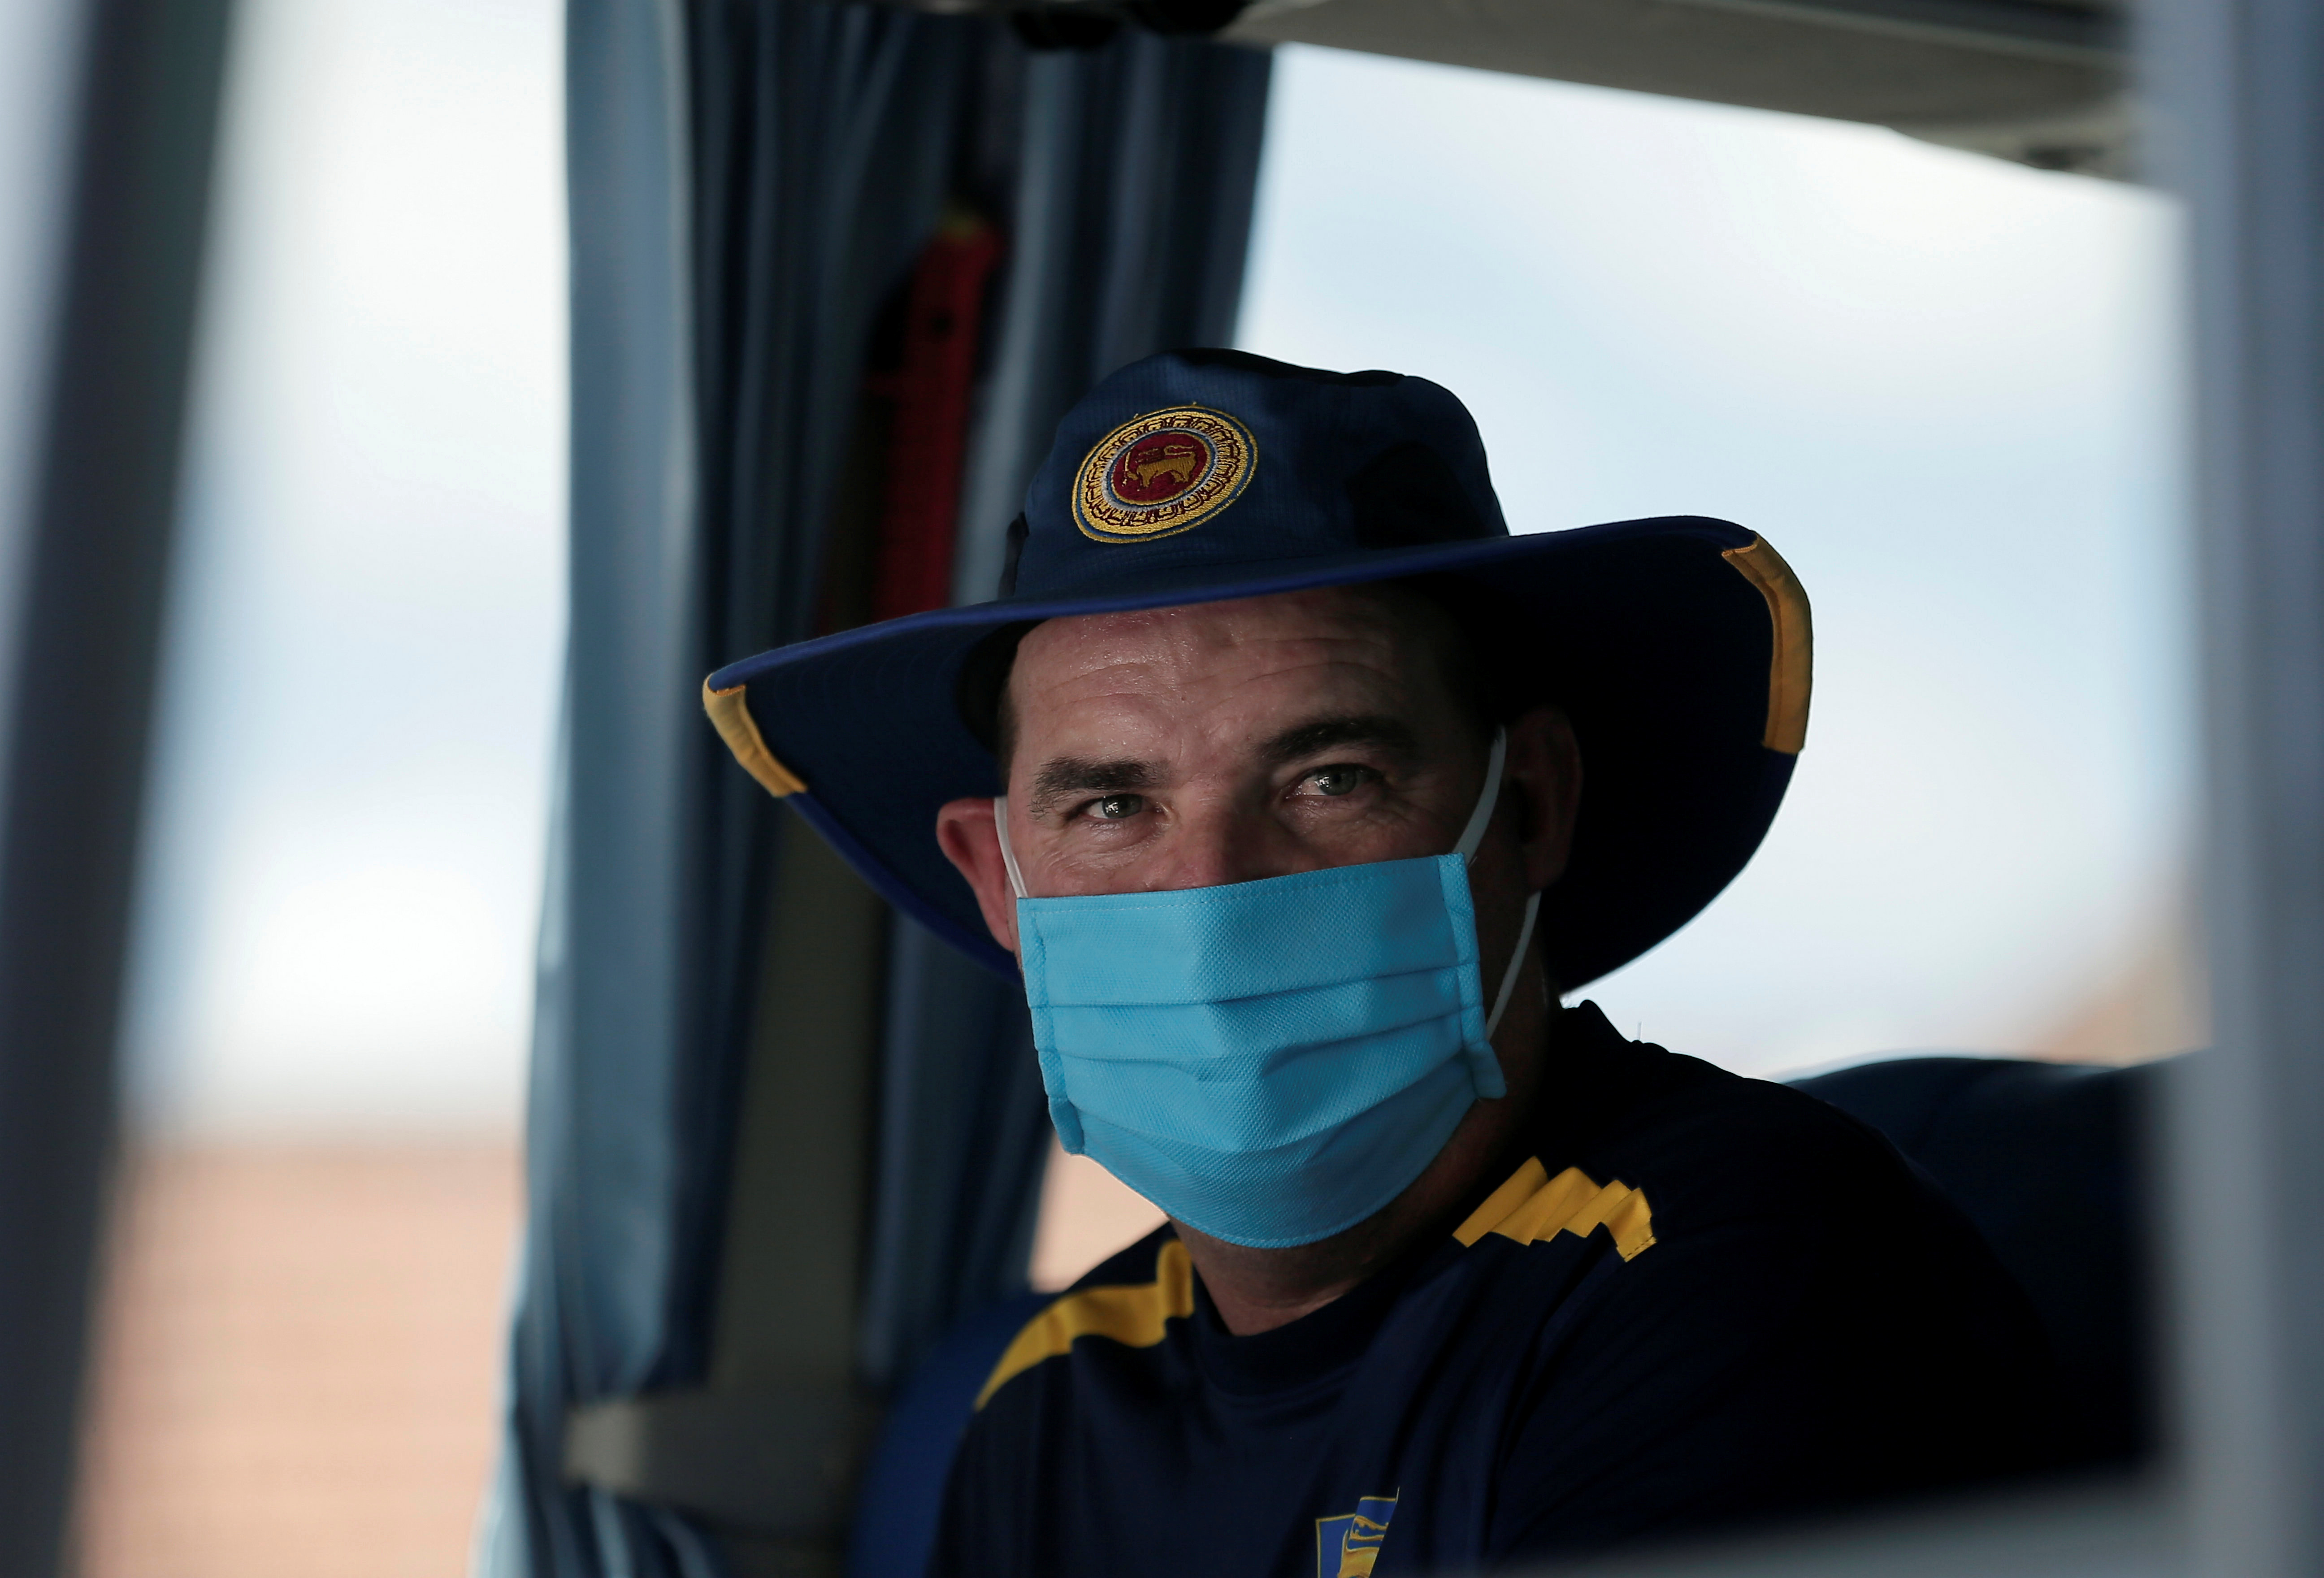 Sri Lankan national cricket team coach Mickey Arthur wearing a protective mask looks on from inside the team bus after their first practice session after almost two months lockdown amidst concerns about the spread of coronavirus disease (COVID-19), in Colombo, Sri Lanka, June 2, 2020. REUTERS/Dinuka Liyanawatte/File Photo